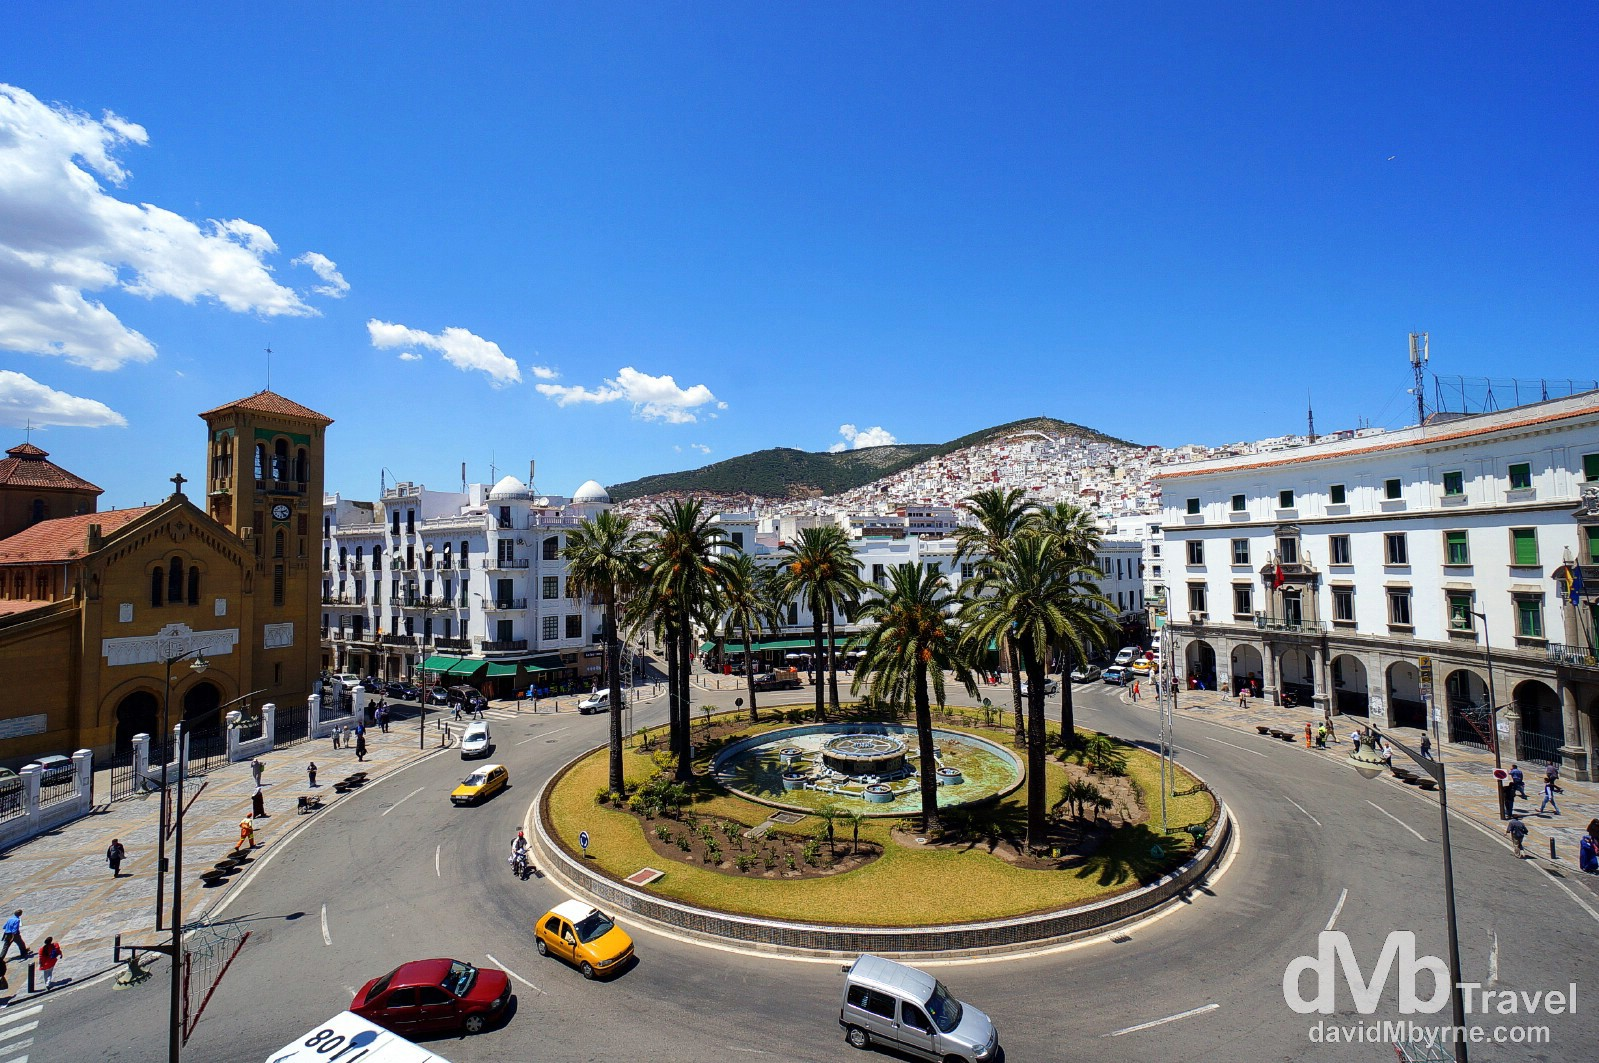 The view from room 11 in the Pension Iberia overlooking the Ville Nouvelle's Place Moulay El Mehdi in Tetouan, northern Morocco. June 2nd, 2014.